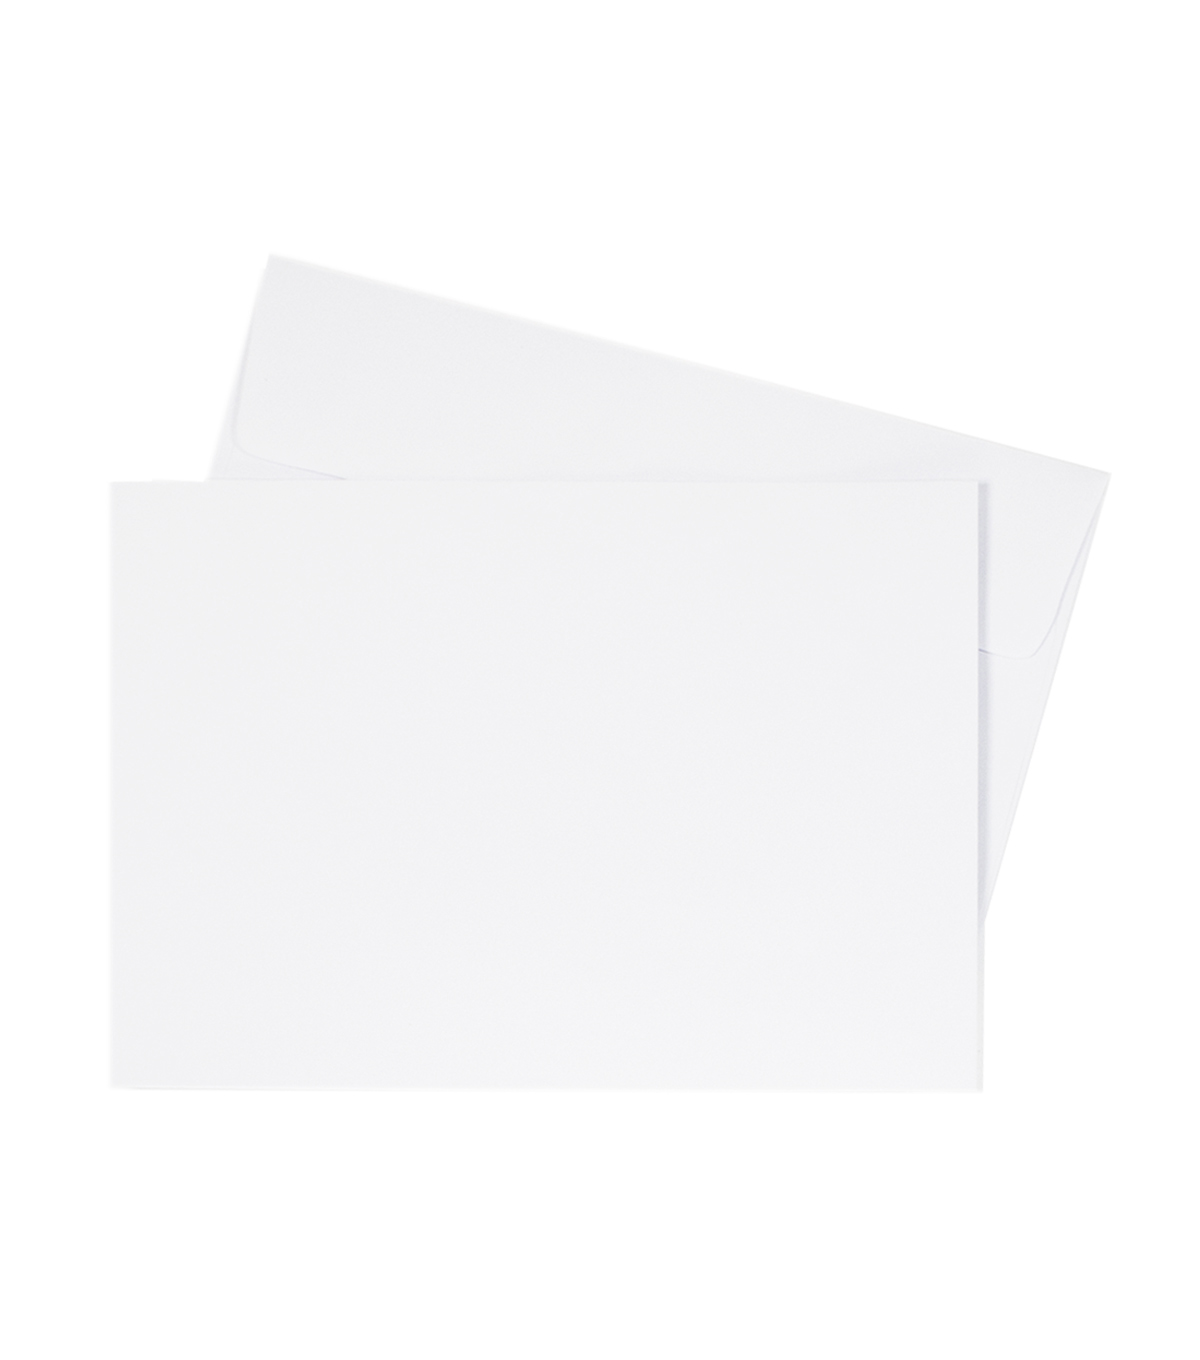 Park Lane A7 Envelopes-White